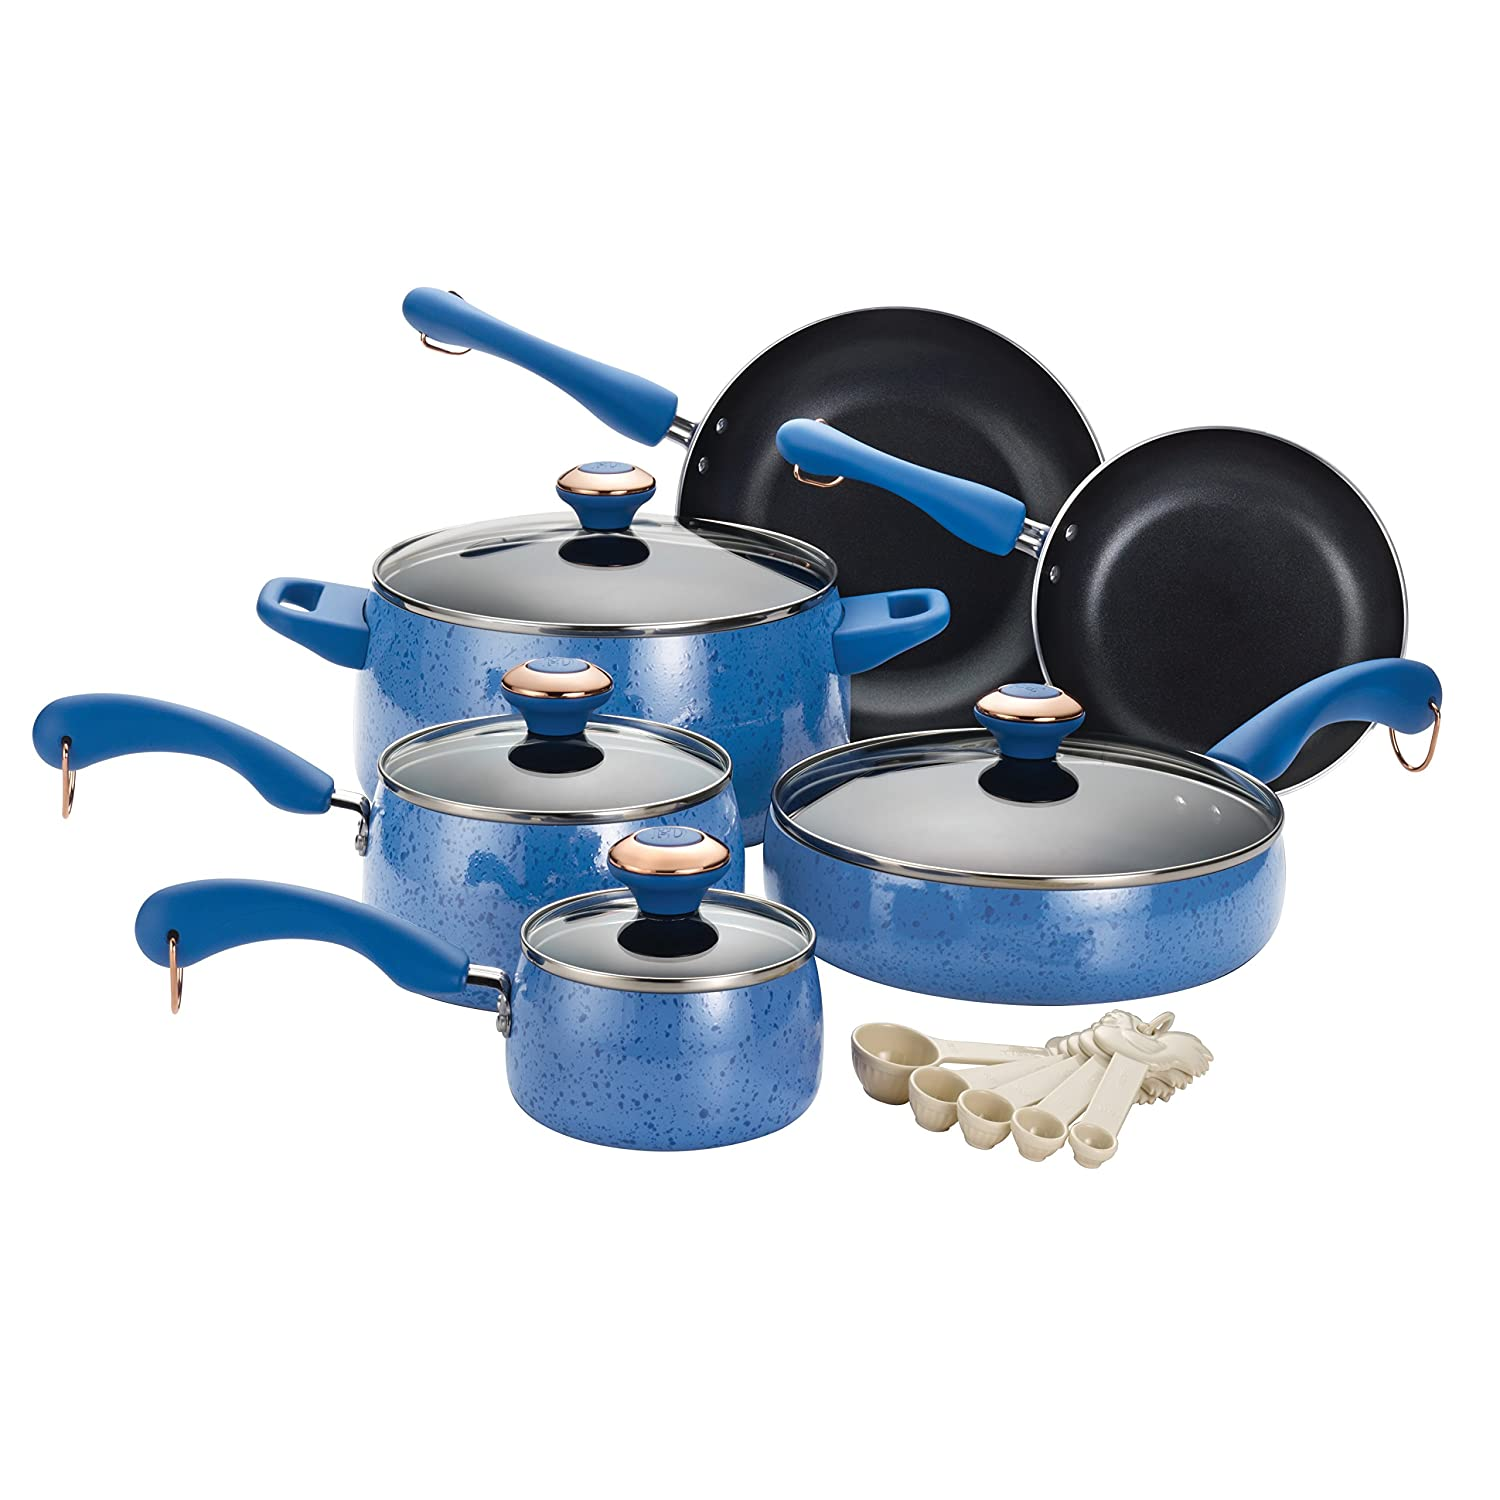 Amazon.com: Paula Deen Signature Porcelain Nonstick 15-Piece ...